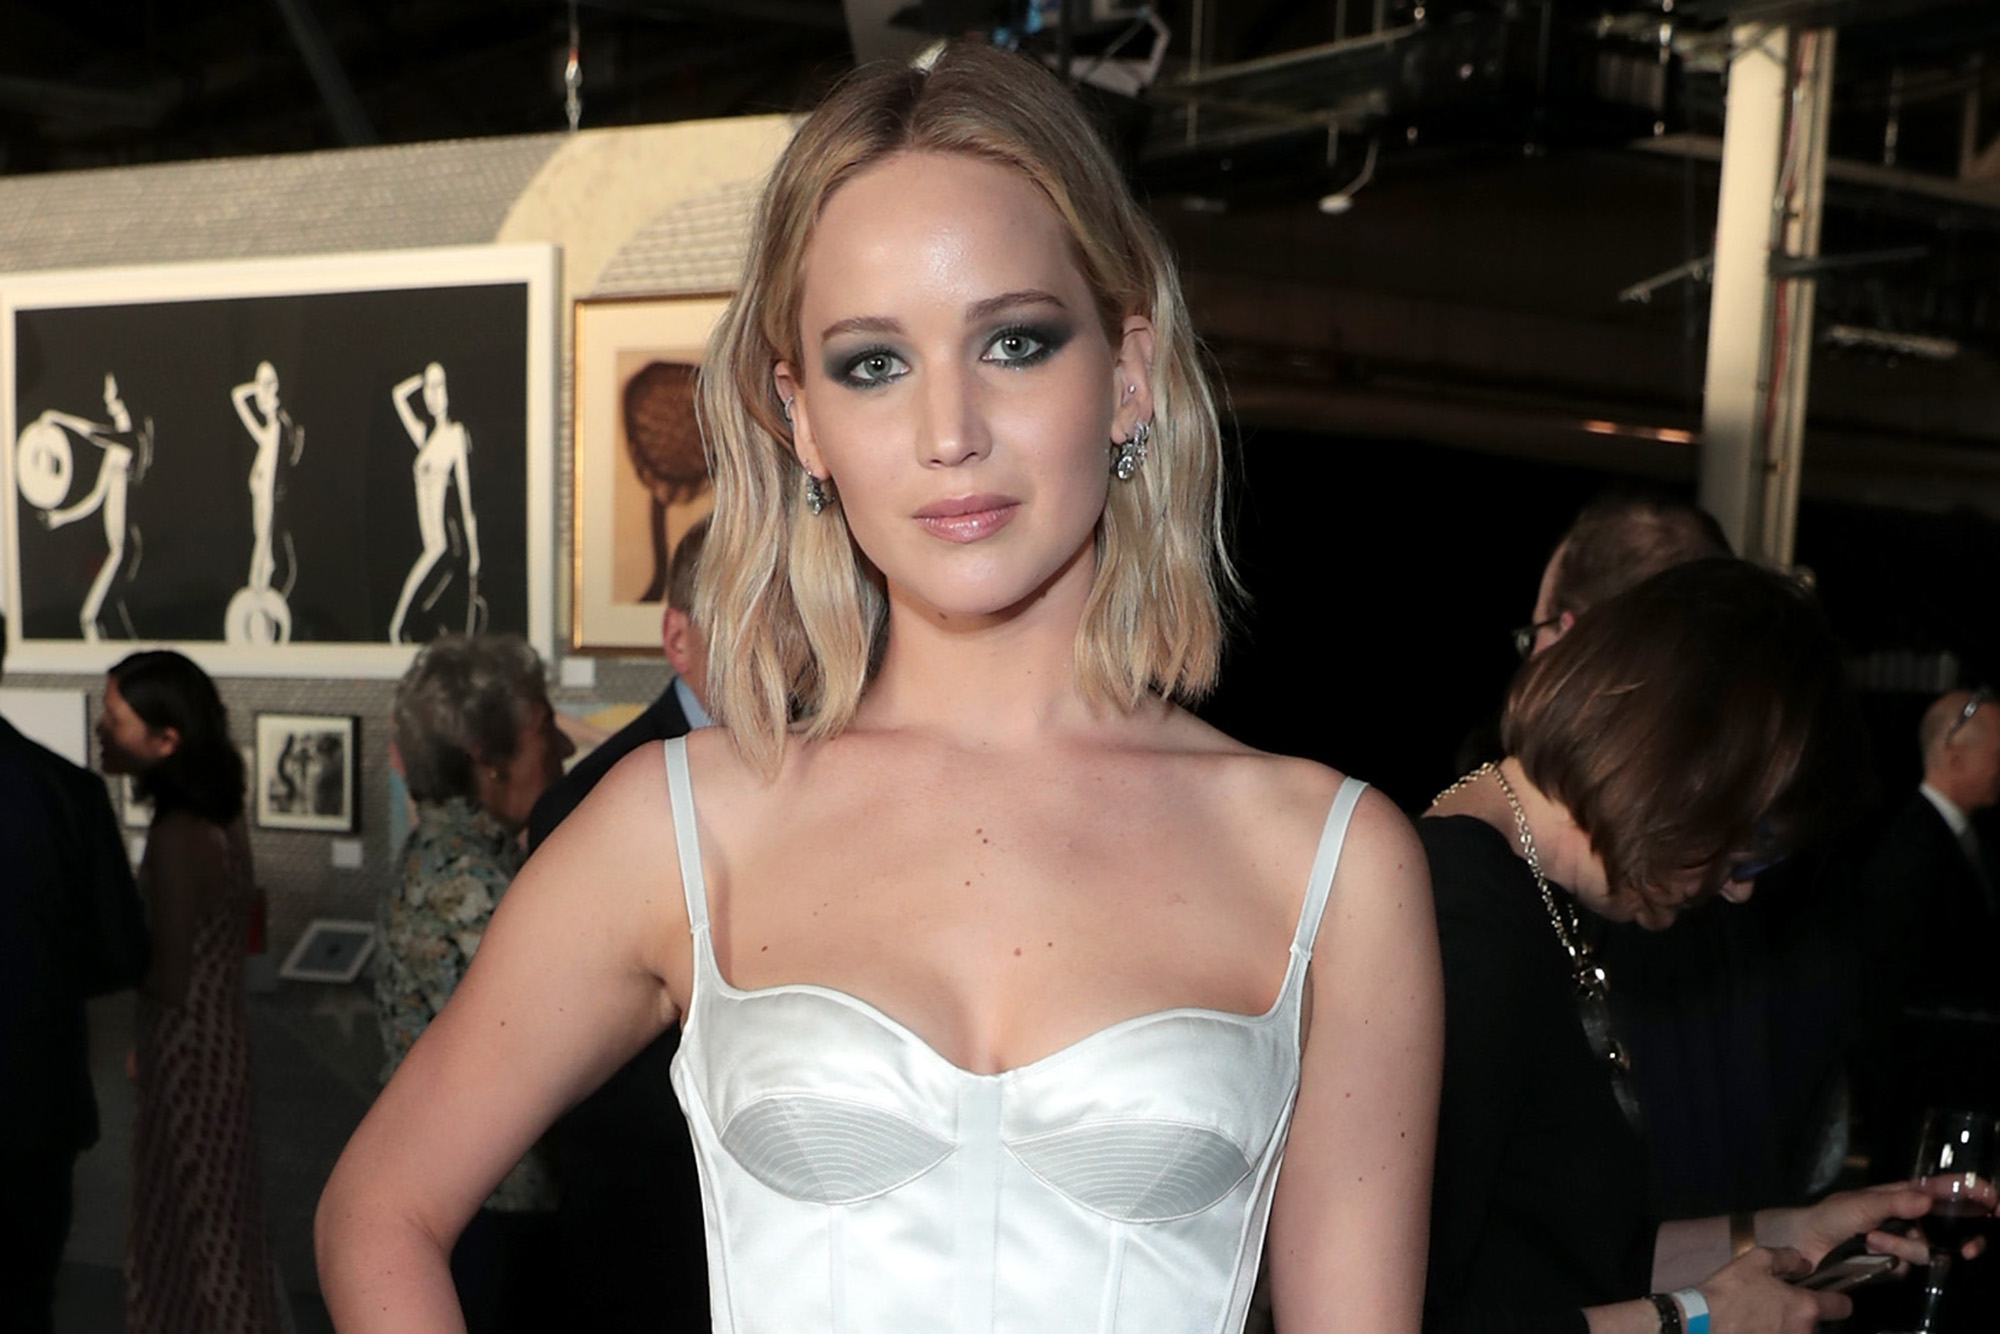 Jennifer Lawrence S Wedding Dress Reportedly Had Its Own Hotel Room,Outdoor Wedding Summer Wedding Guest Dresses 2018